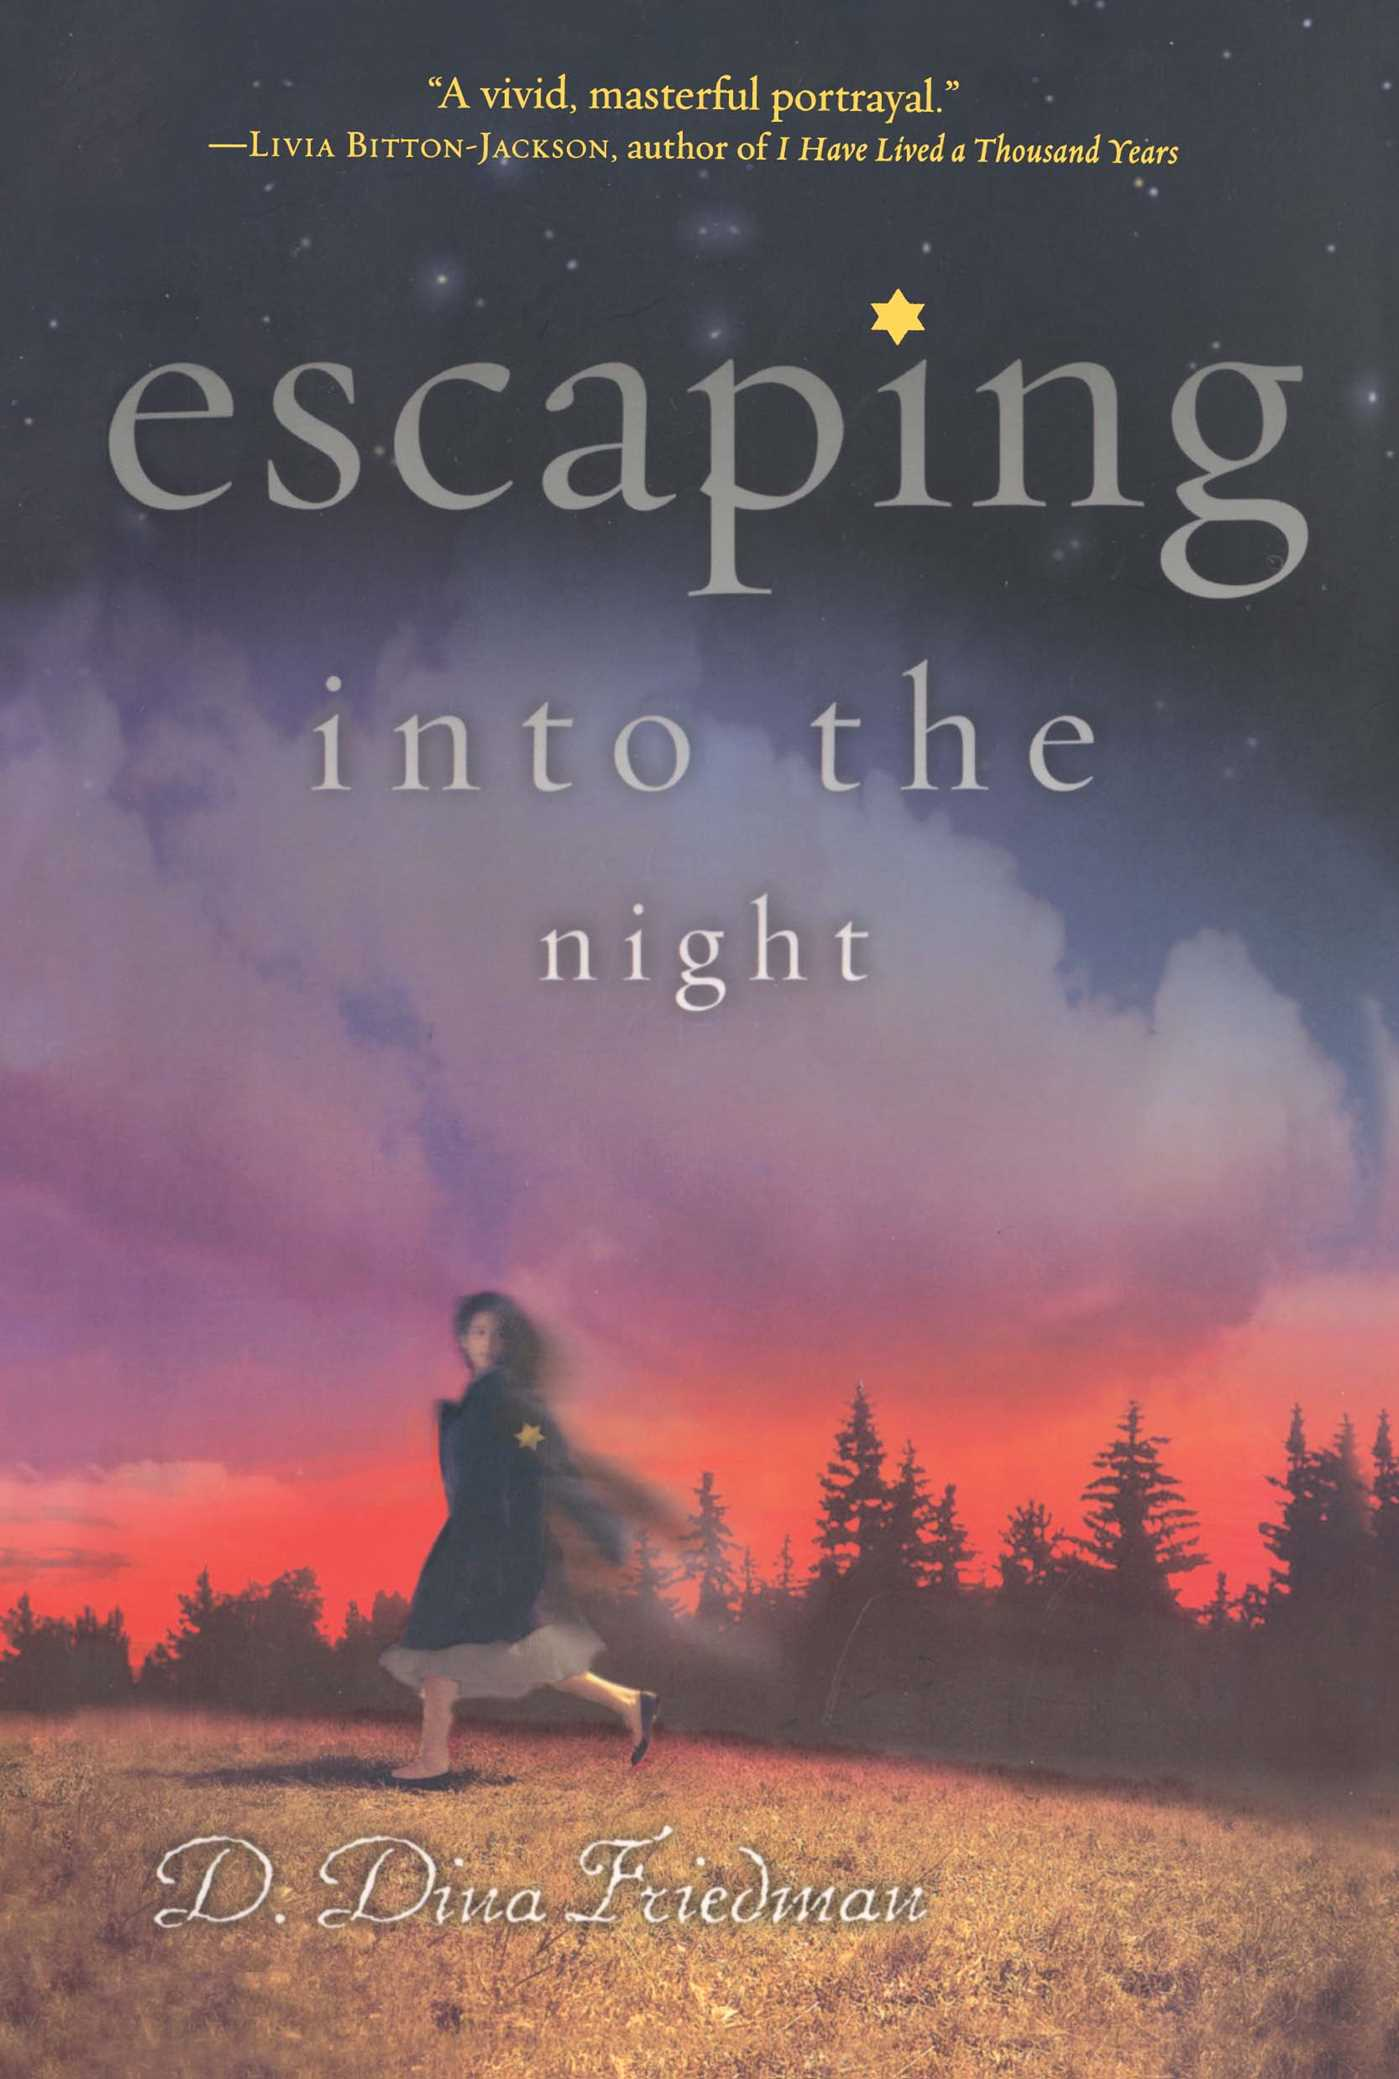 Escaping into the night 9781416986485 hr